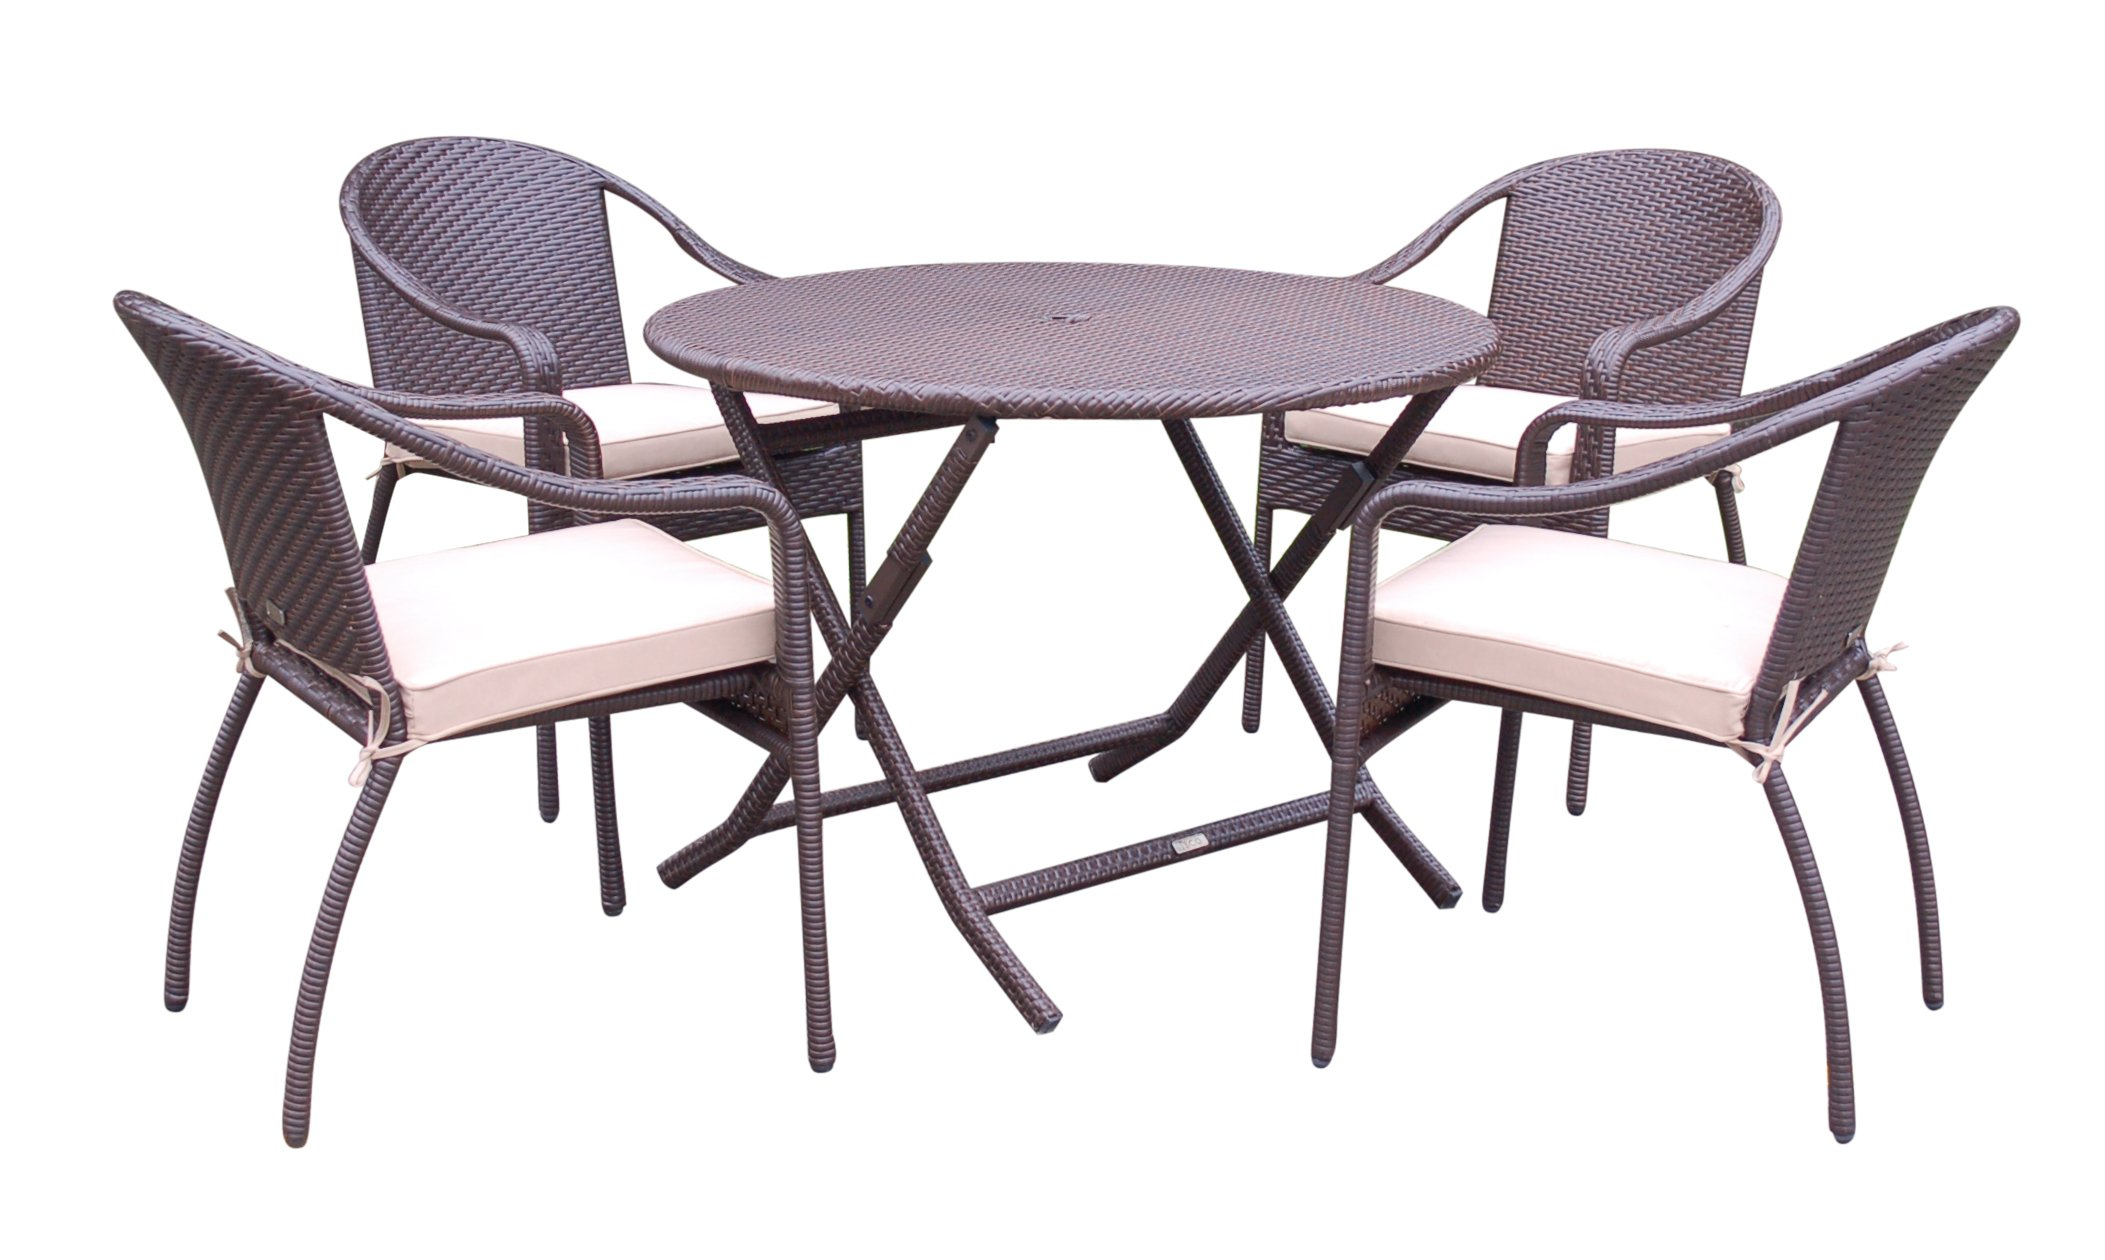 Jeco W00501R-G-FS006 5 Piece Cafe Curved Back Chairs and Folding Wicker Table, Espresso